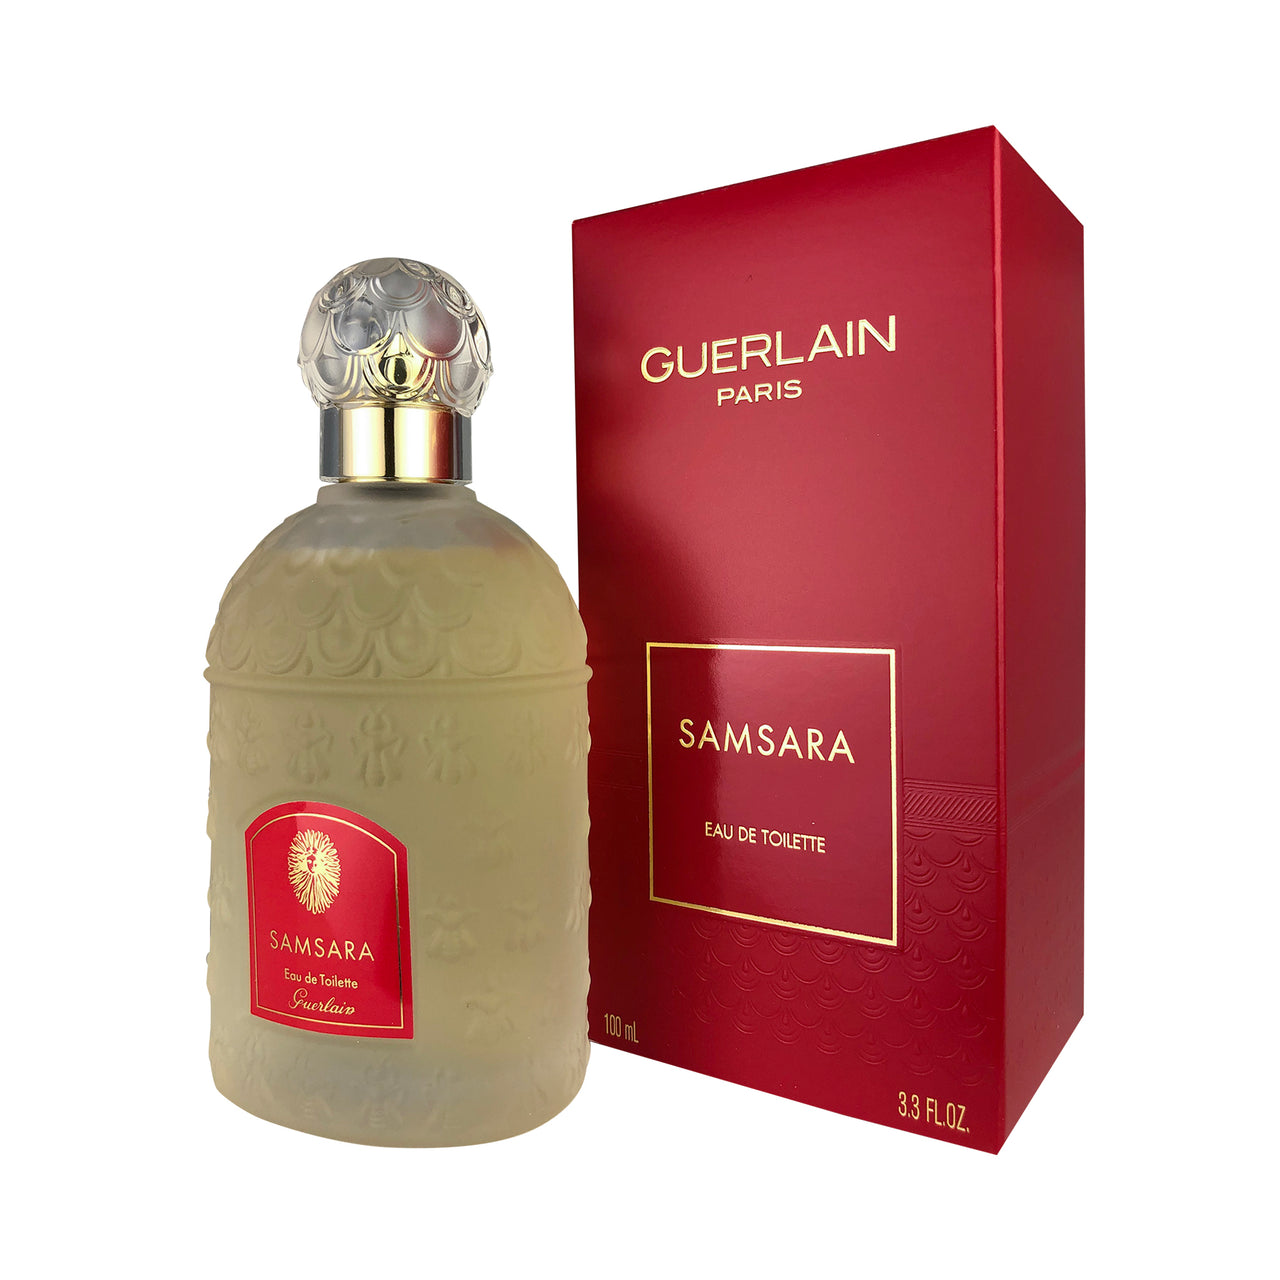 Guerlain Samsara 3.3 oz EDT Spray